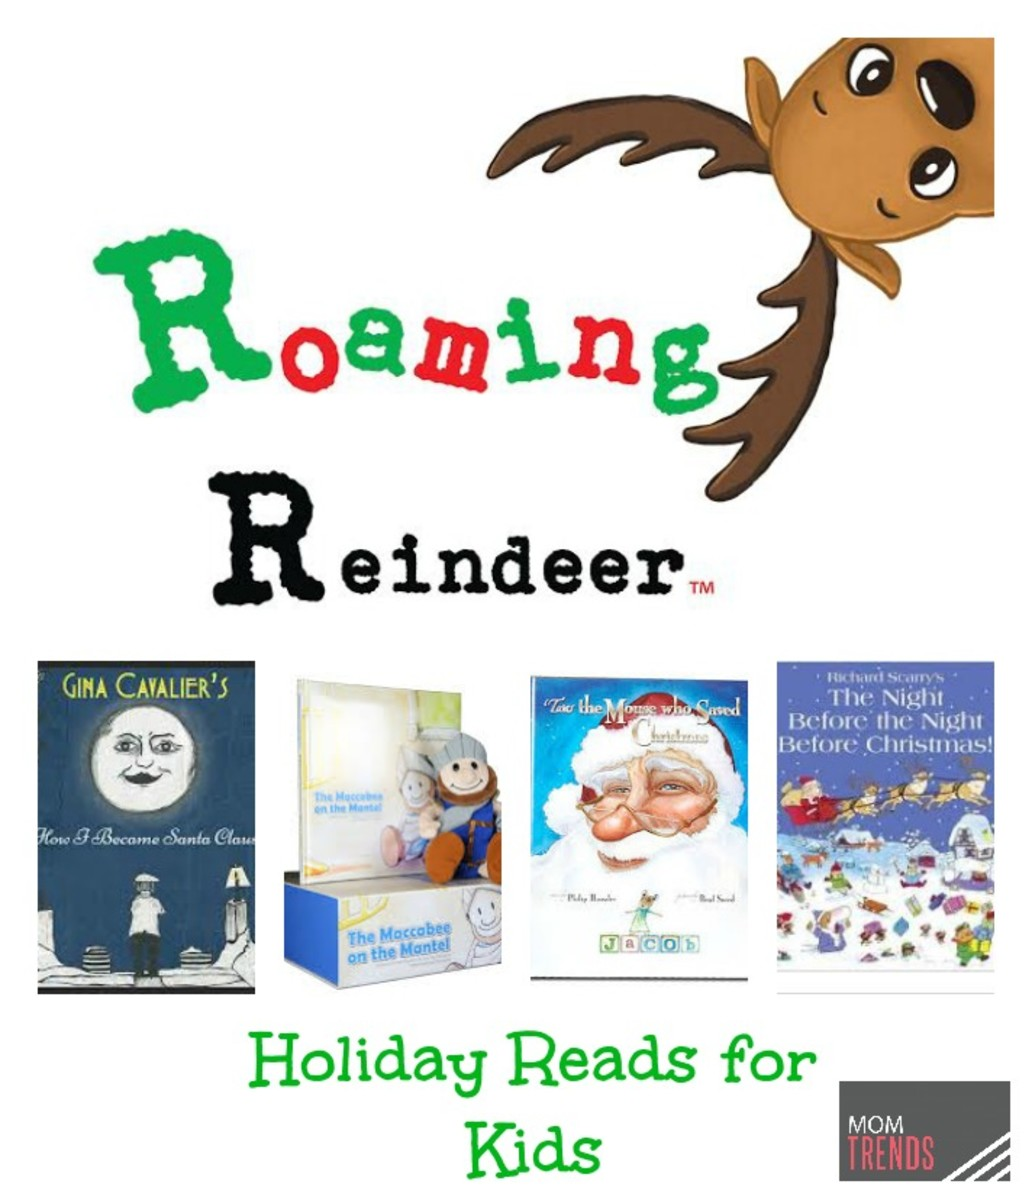 Holiday Reads for Kids